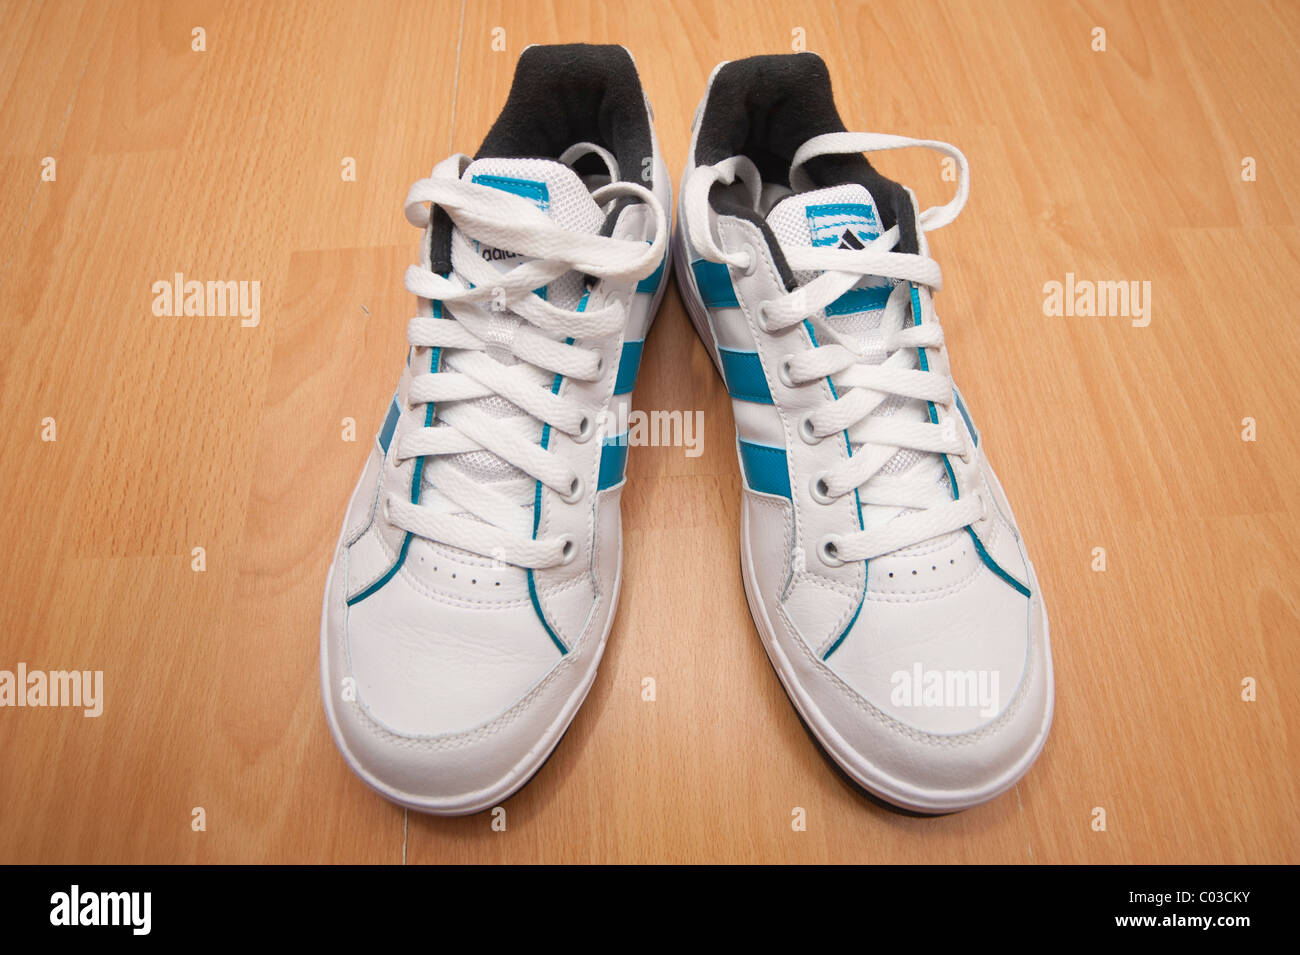 Adidas Uk Alamy Adidas Stockfotosamp; Adidas Uk Bilder Alamy Stockfotosamp; Uk Bilder Stockfotosamp; c4LqA5Rj3S